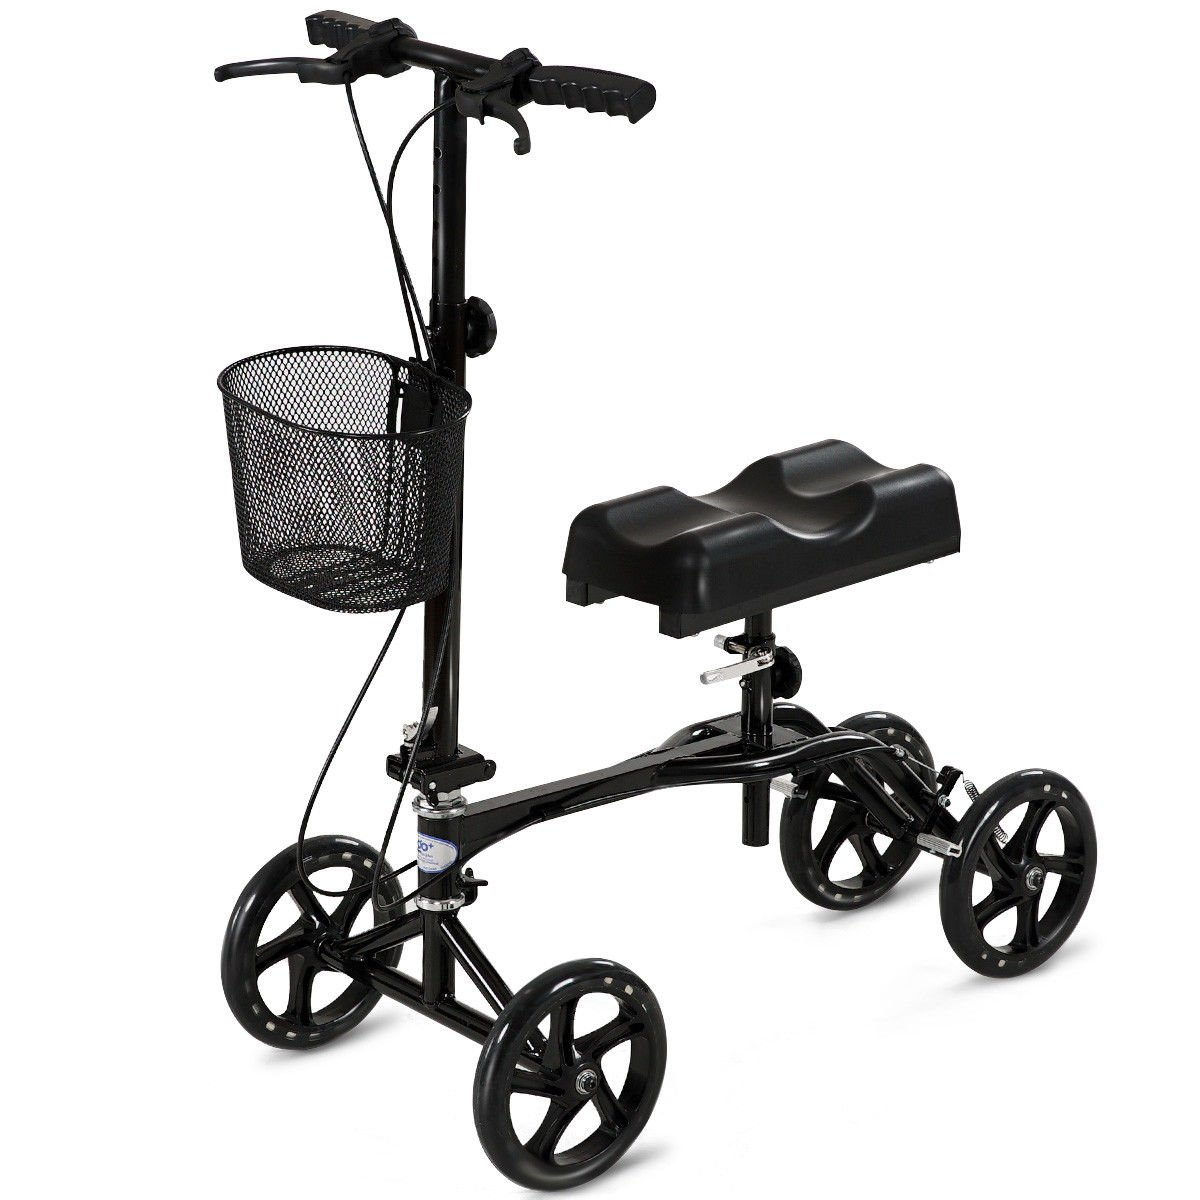 Goplus Foldable Knee Walker Medical Steerable Knee Scooter w/ Deluxe Brake System and Basket Crutch Alternative Black